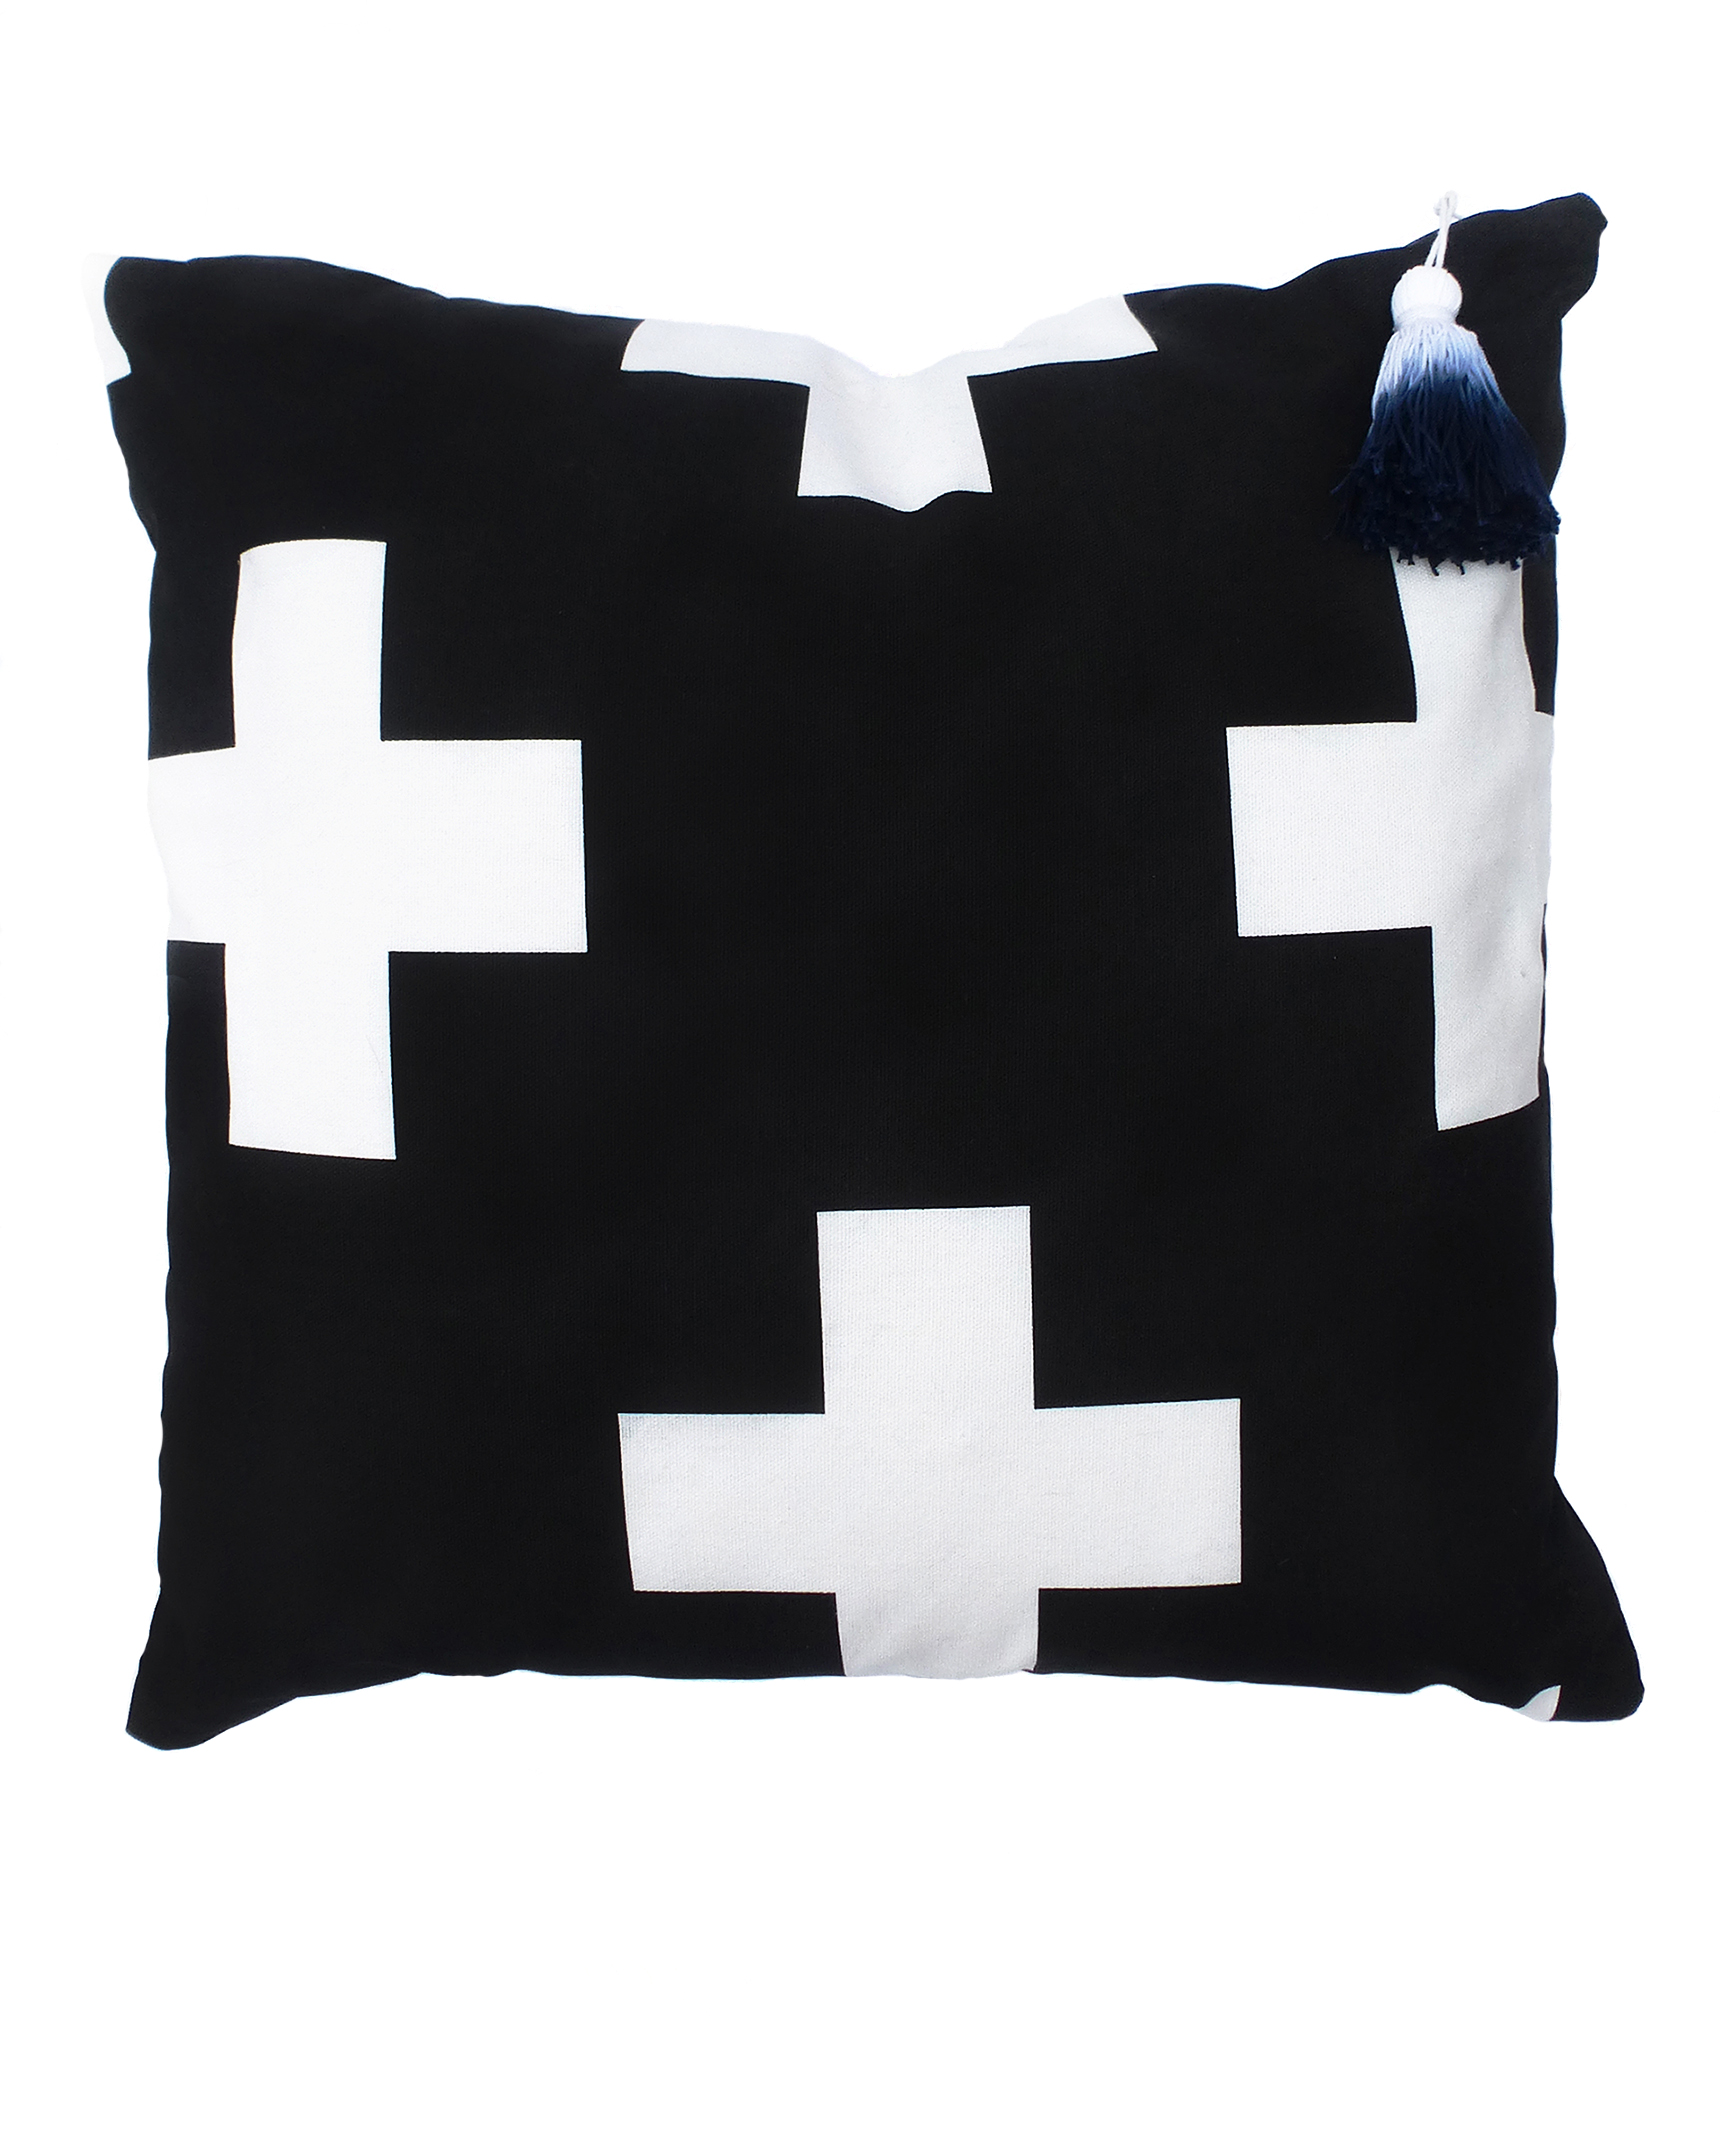 LA CRUZ PILLOW